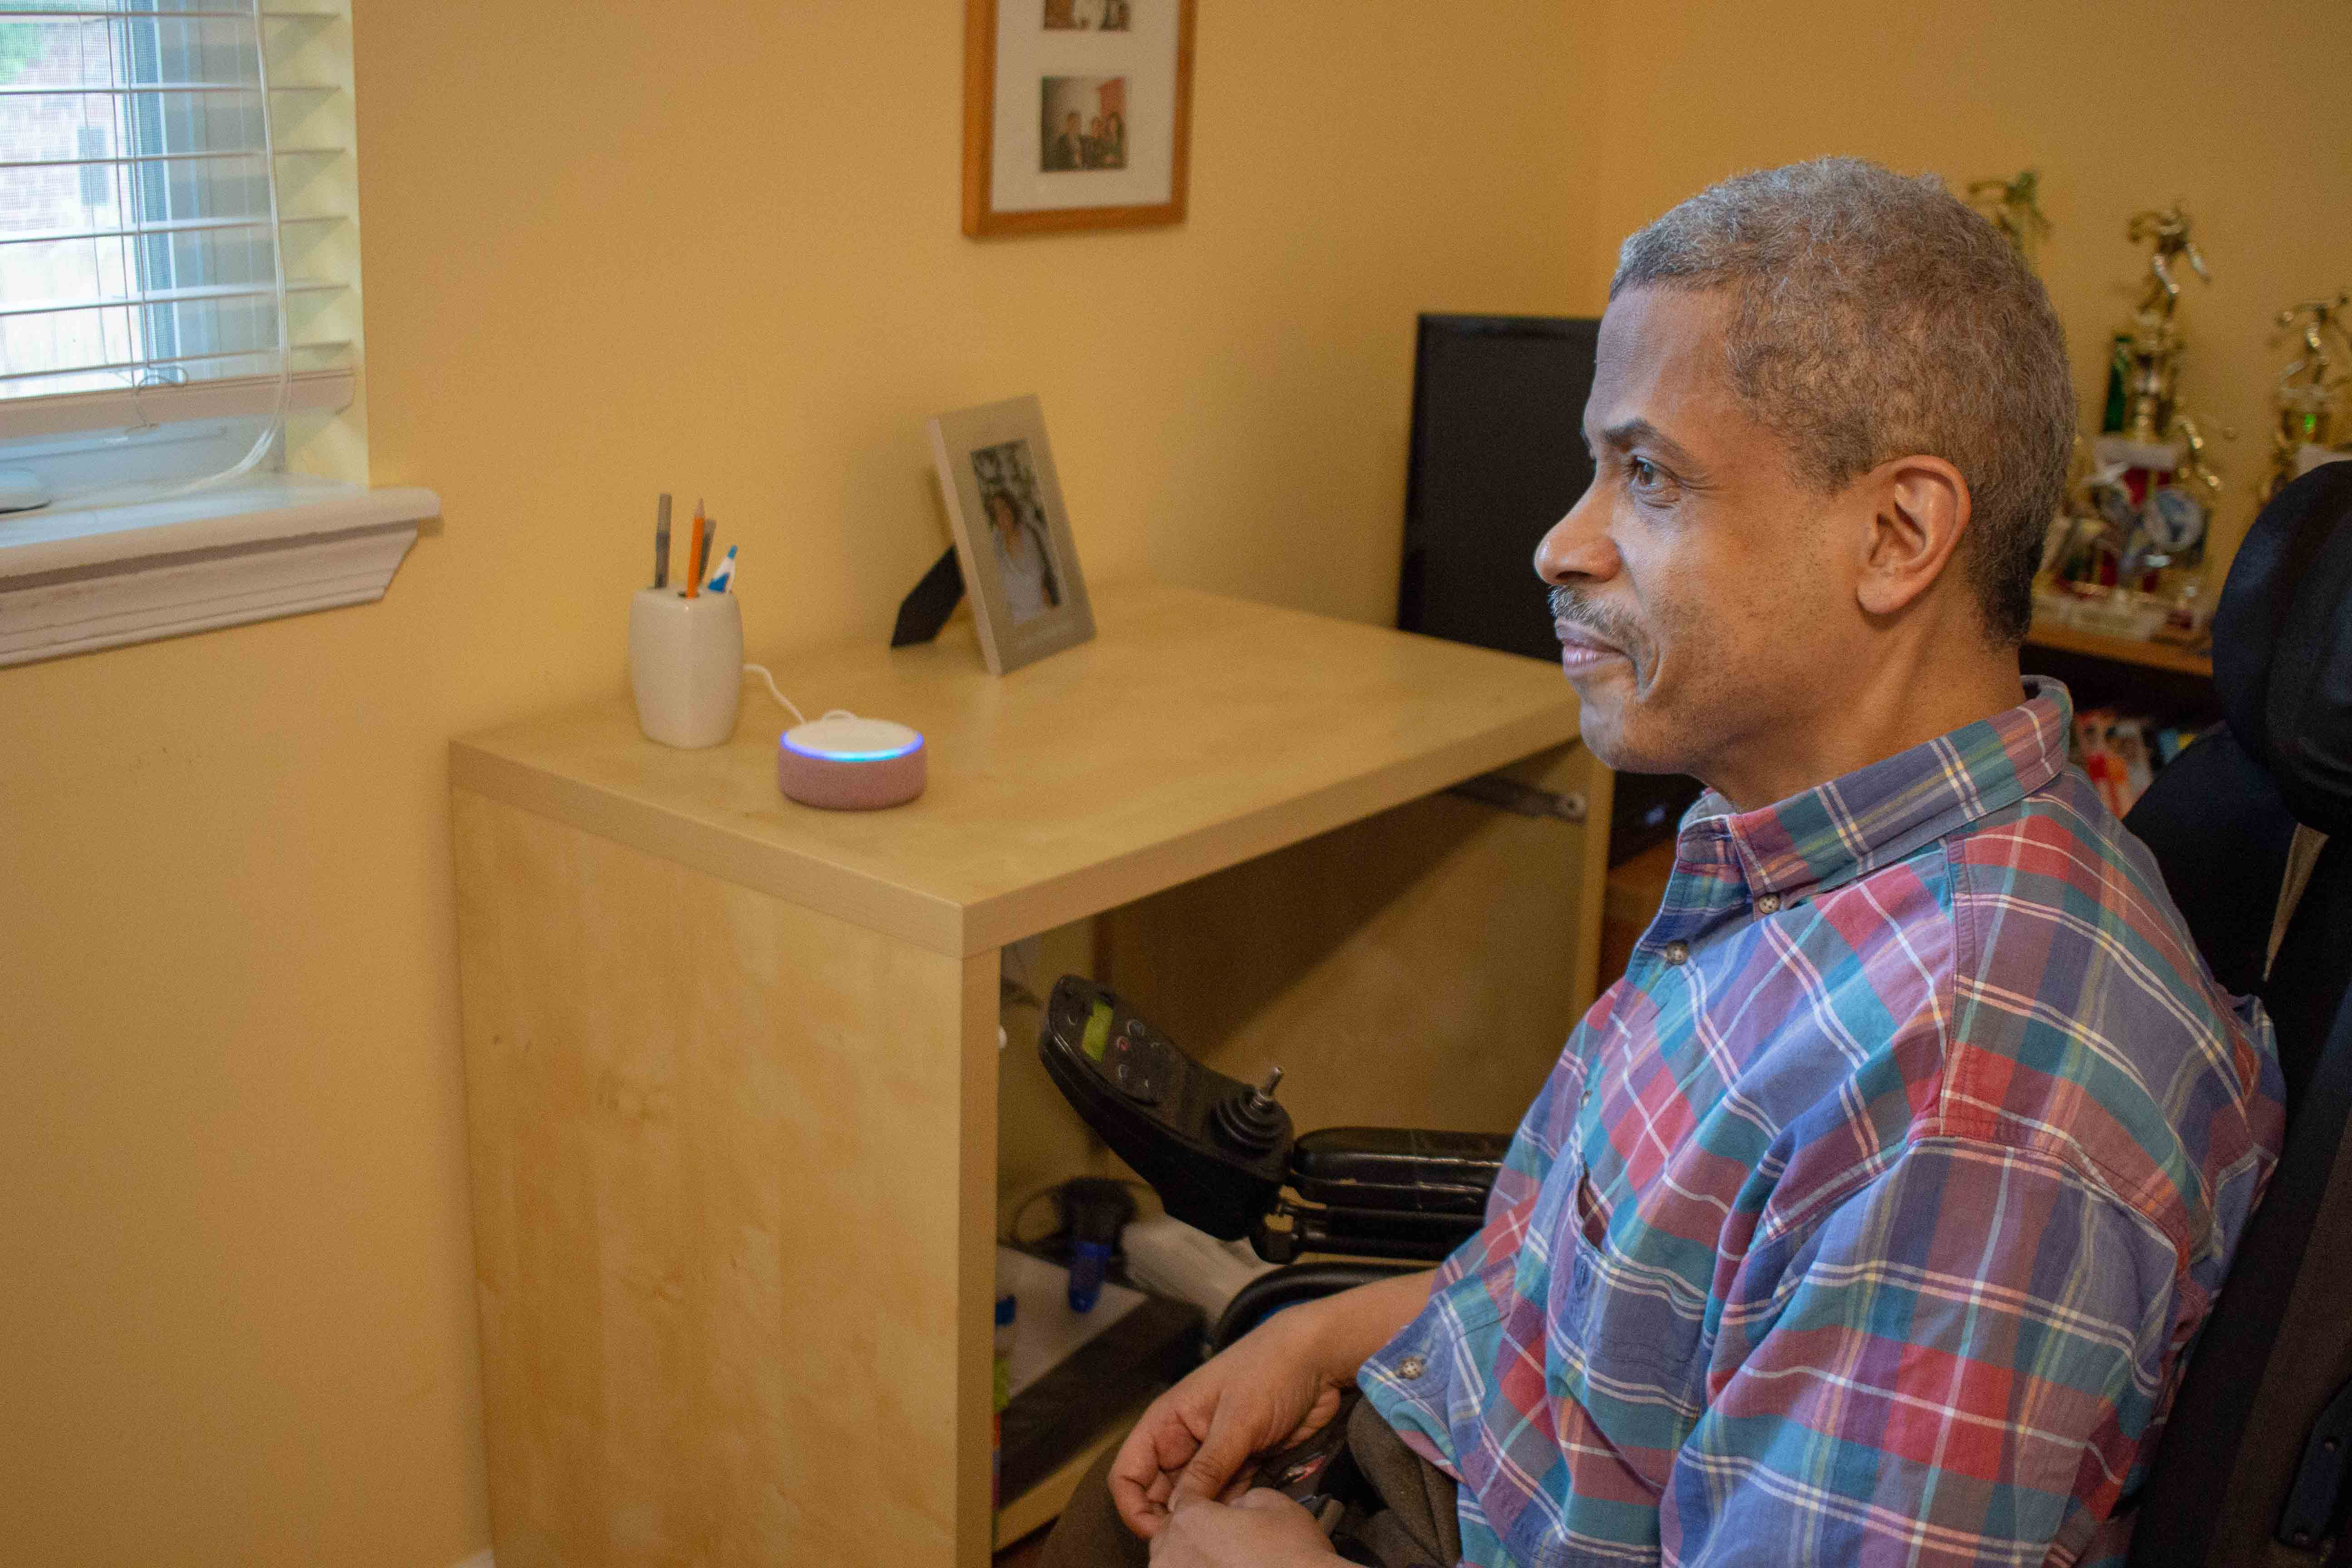 A black man sits in the foreground with a slight smile and stares off toward a window. Behind him on a desk is a smart speaker which has lit up. The man is seated in a power wheelchair with his hands in his lap. He has a mustache and greying hair, and he is wearing a plaid short-sleeved shirt.